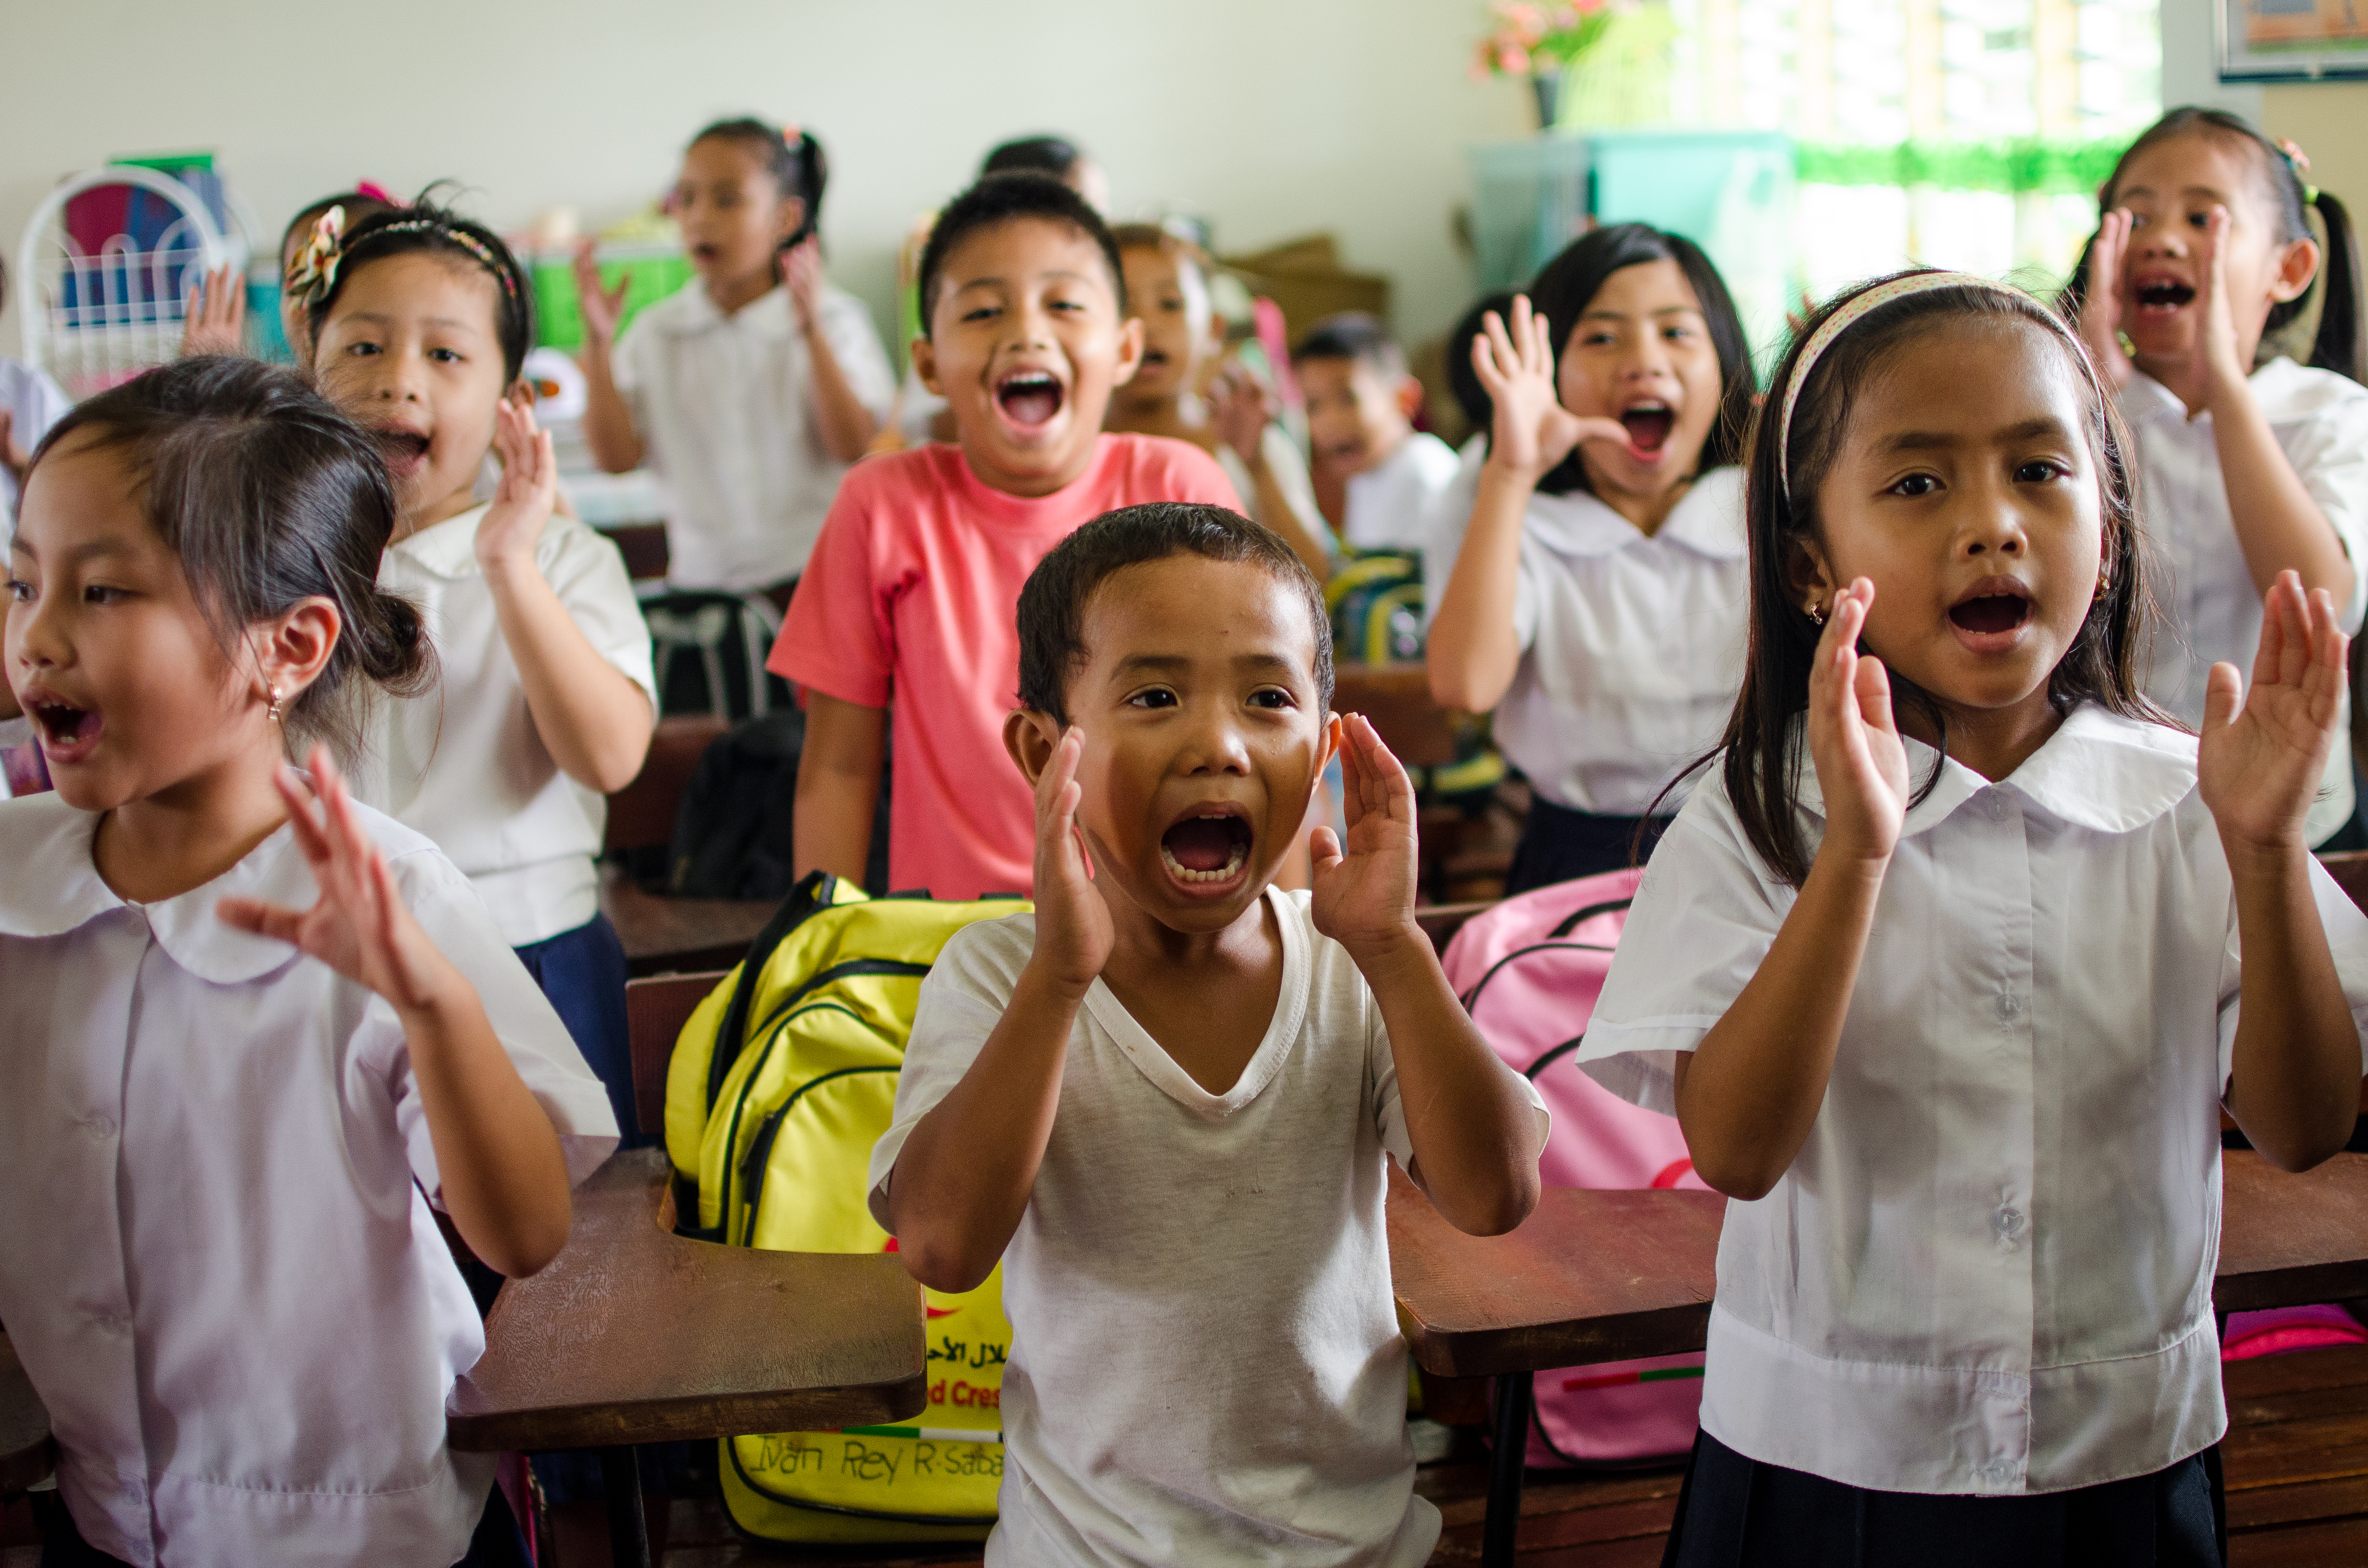 Children stand up and and yell during a class activity inside a classroom